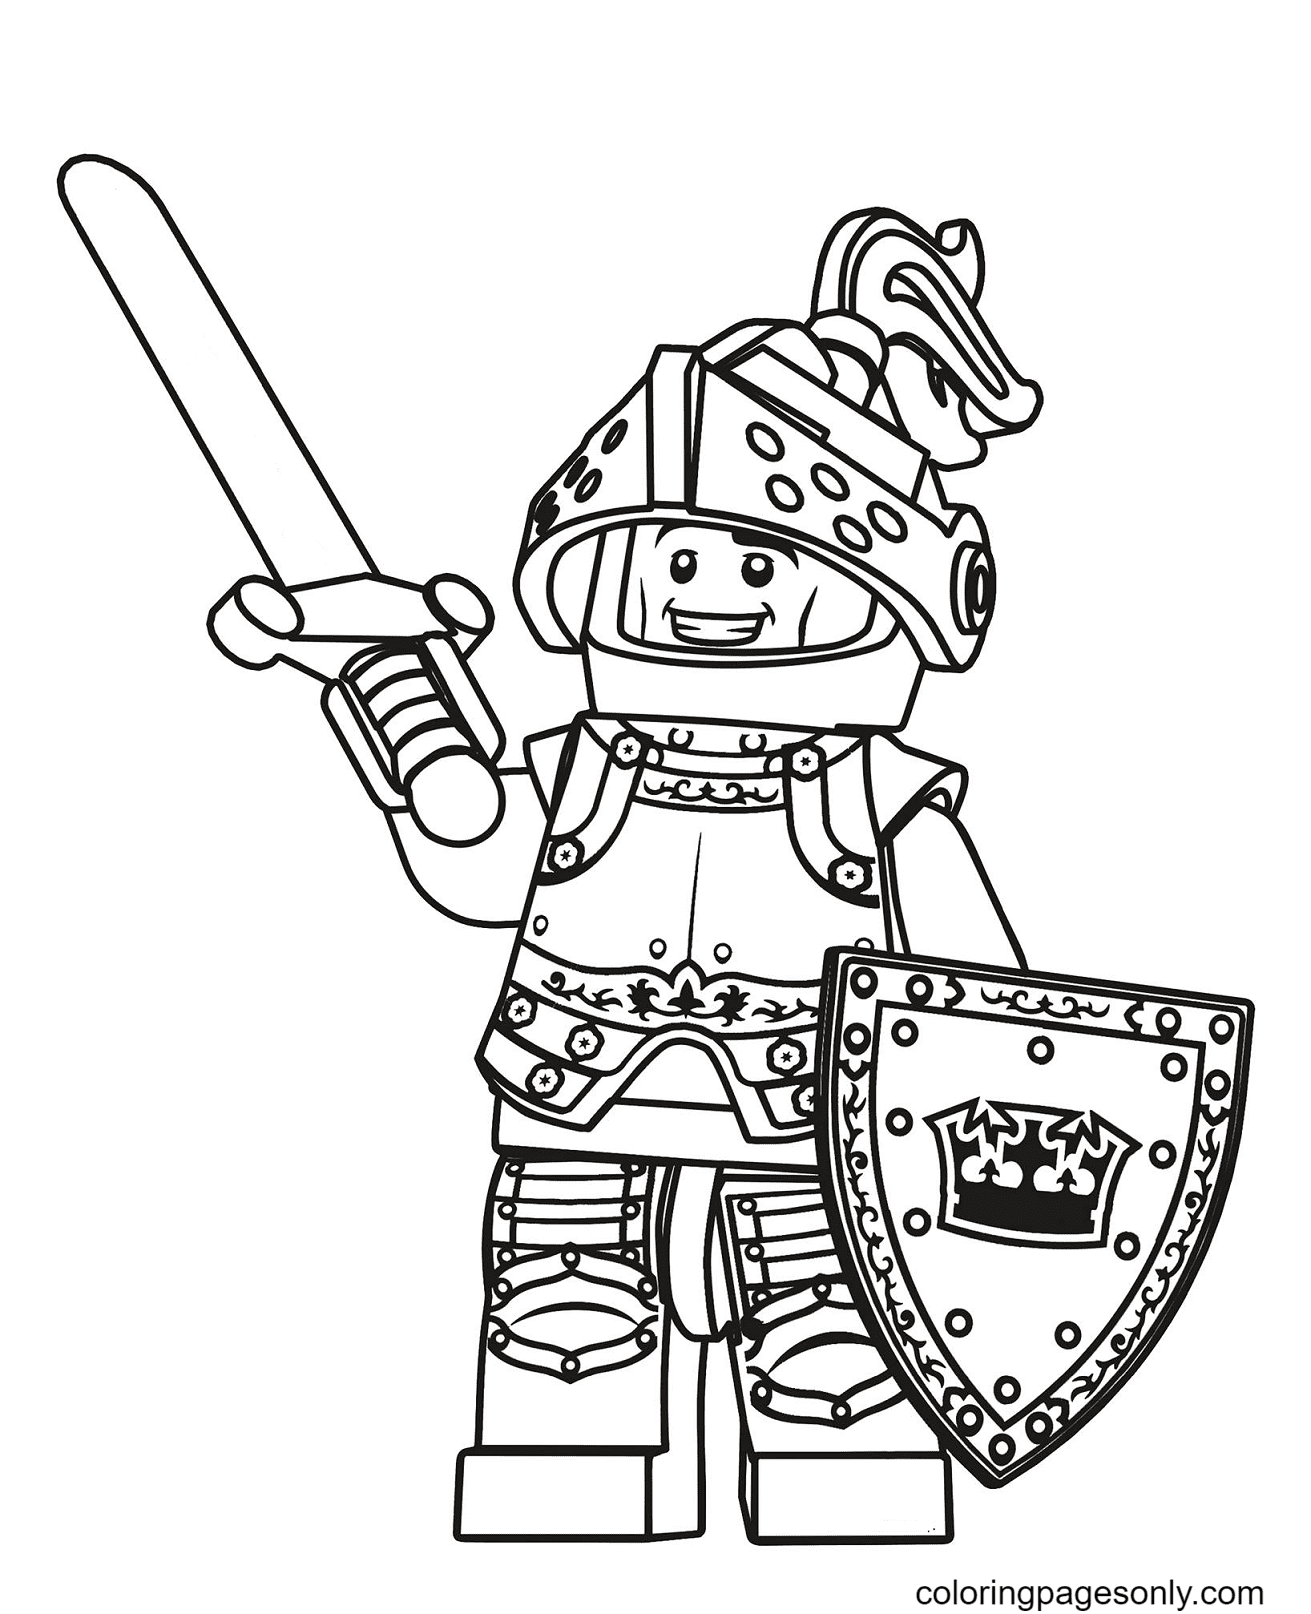 Lego Knight Coloring Page